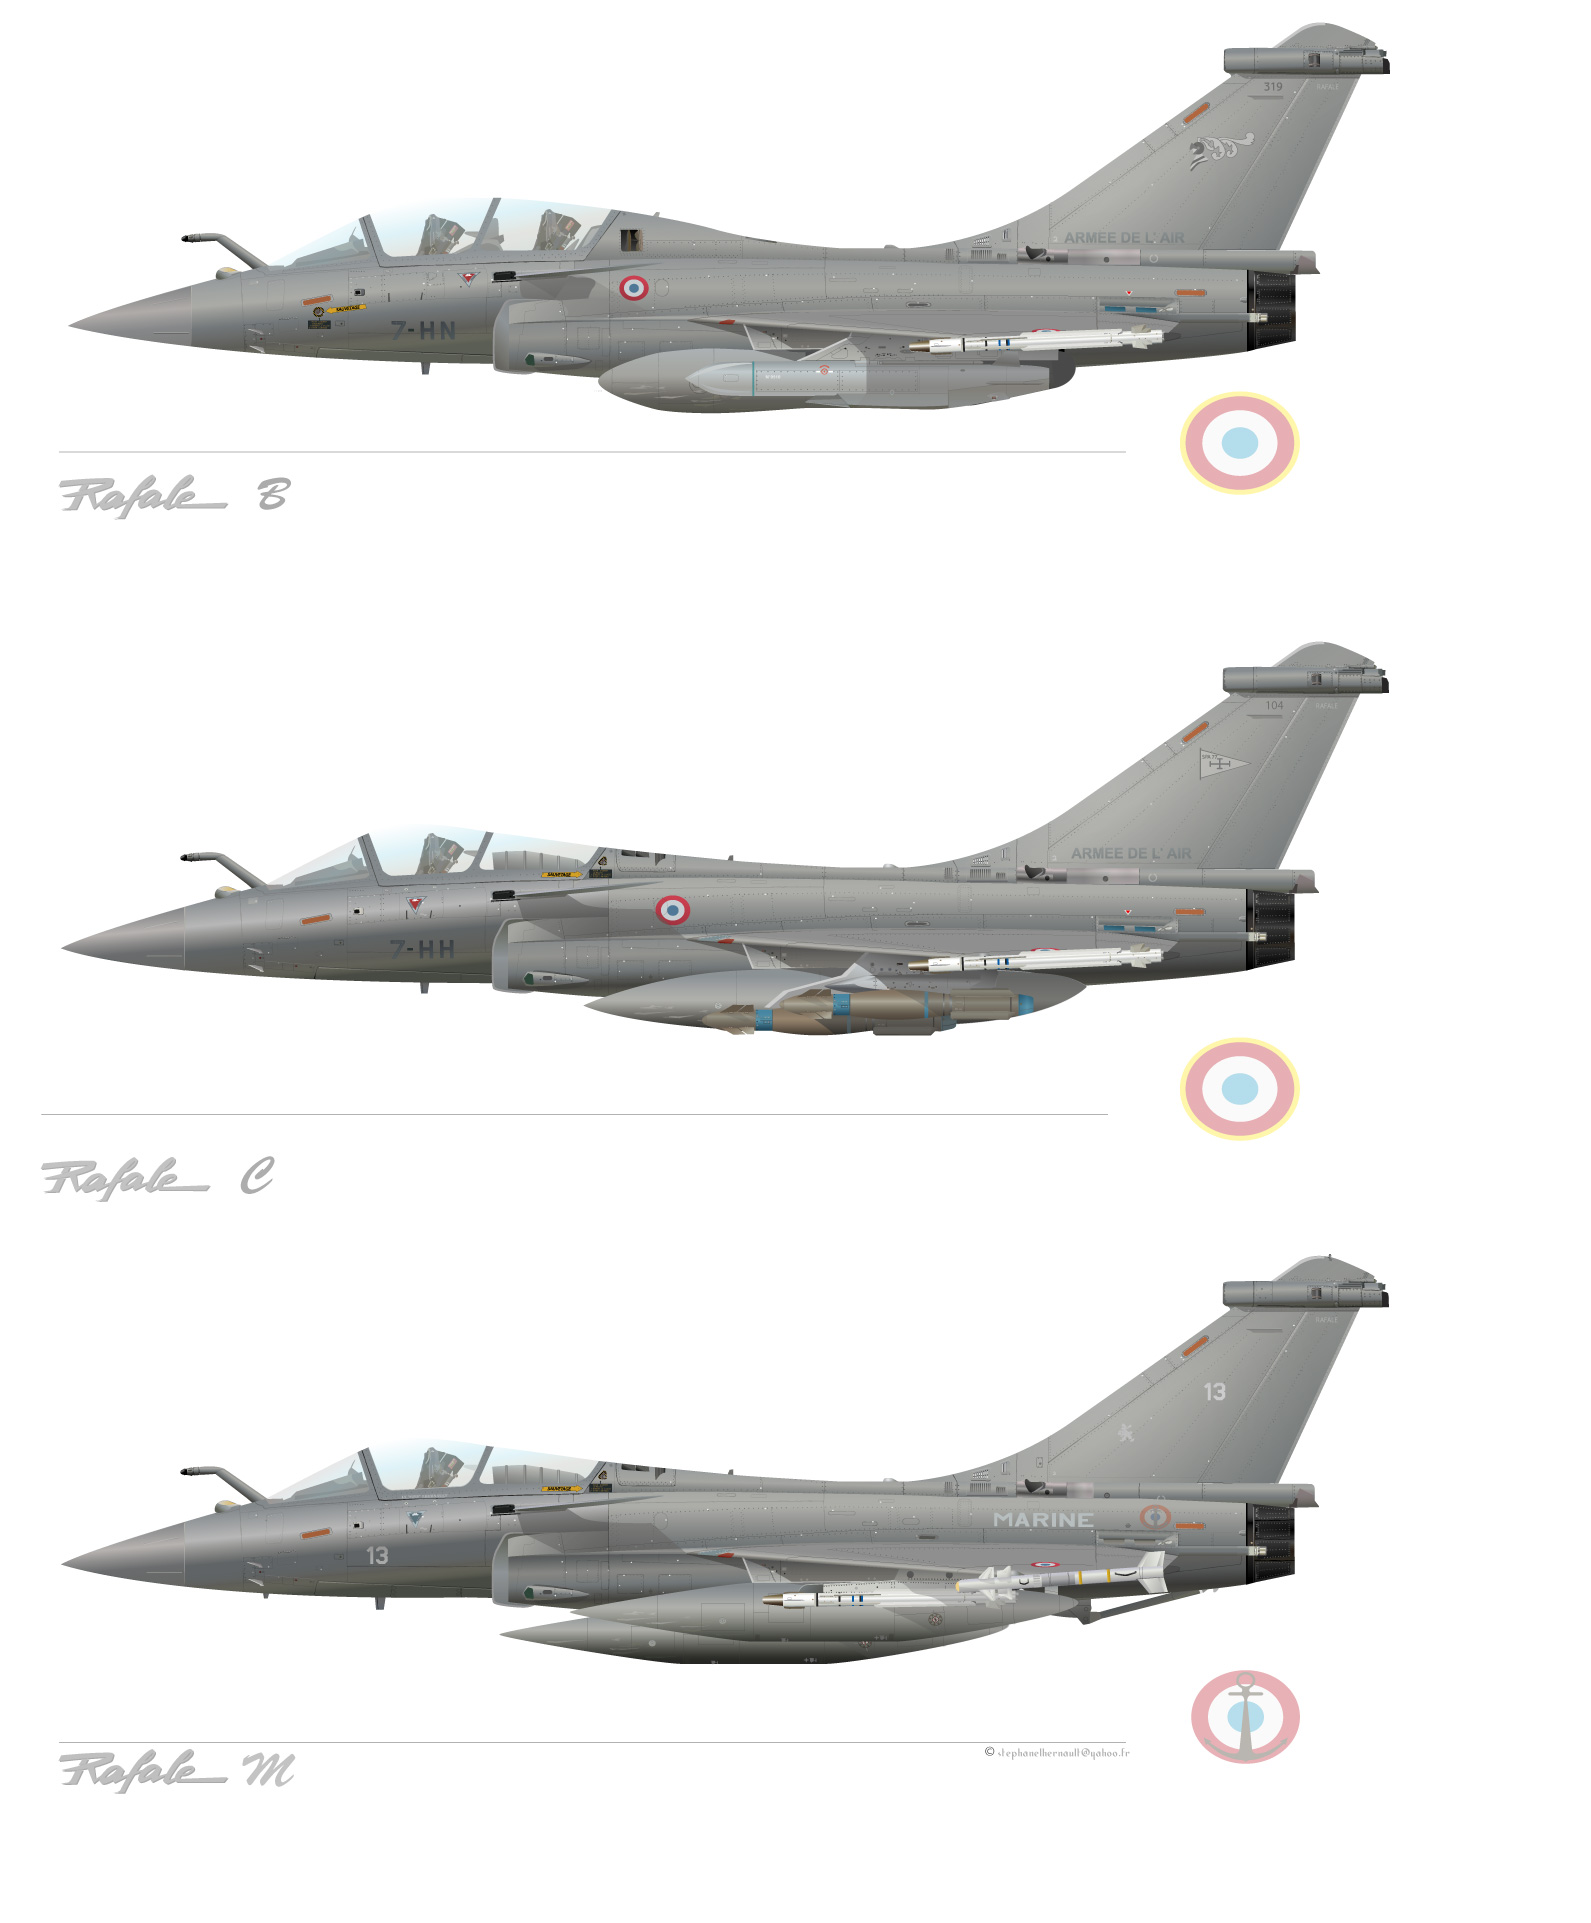 https://i1.wp.com/upload.wikimedia.org/wikipedia/commons/f/f2/Rafalefamily.jpg